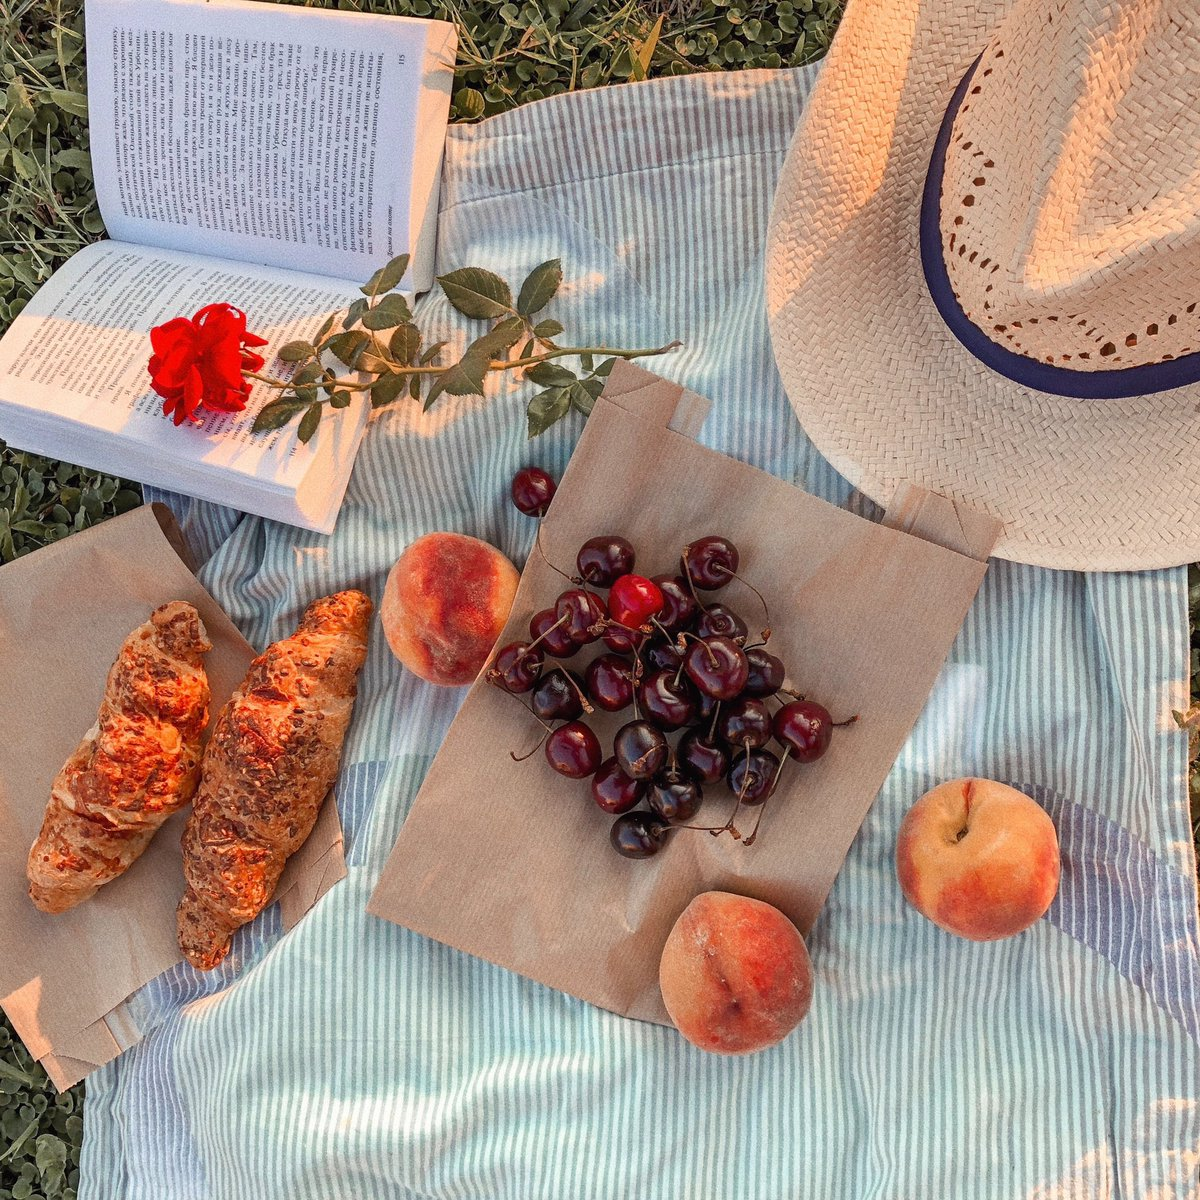 We are all waiting for things to get normal and enjoy a picnic under the warm sun   Do you agree?  . . . . . - @pexels  #picnic #picnicdate #pandemic #pandemic2020 #covid19 #coronavirus #relax #relaxing #outdoors #photography #photooftheday #peaches #book #life #enjoypic.twitter.com/v3002tVAWJ